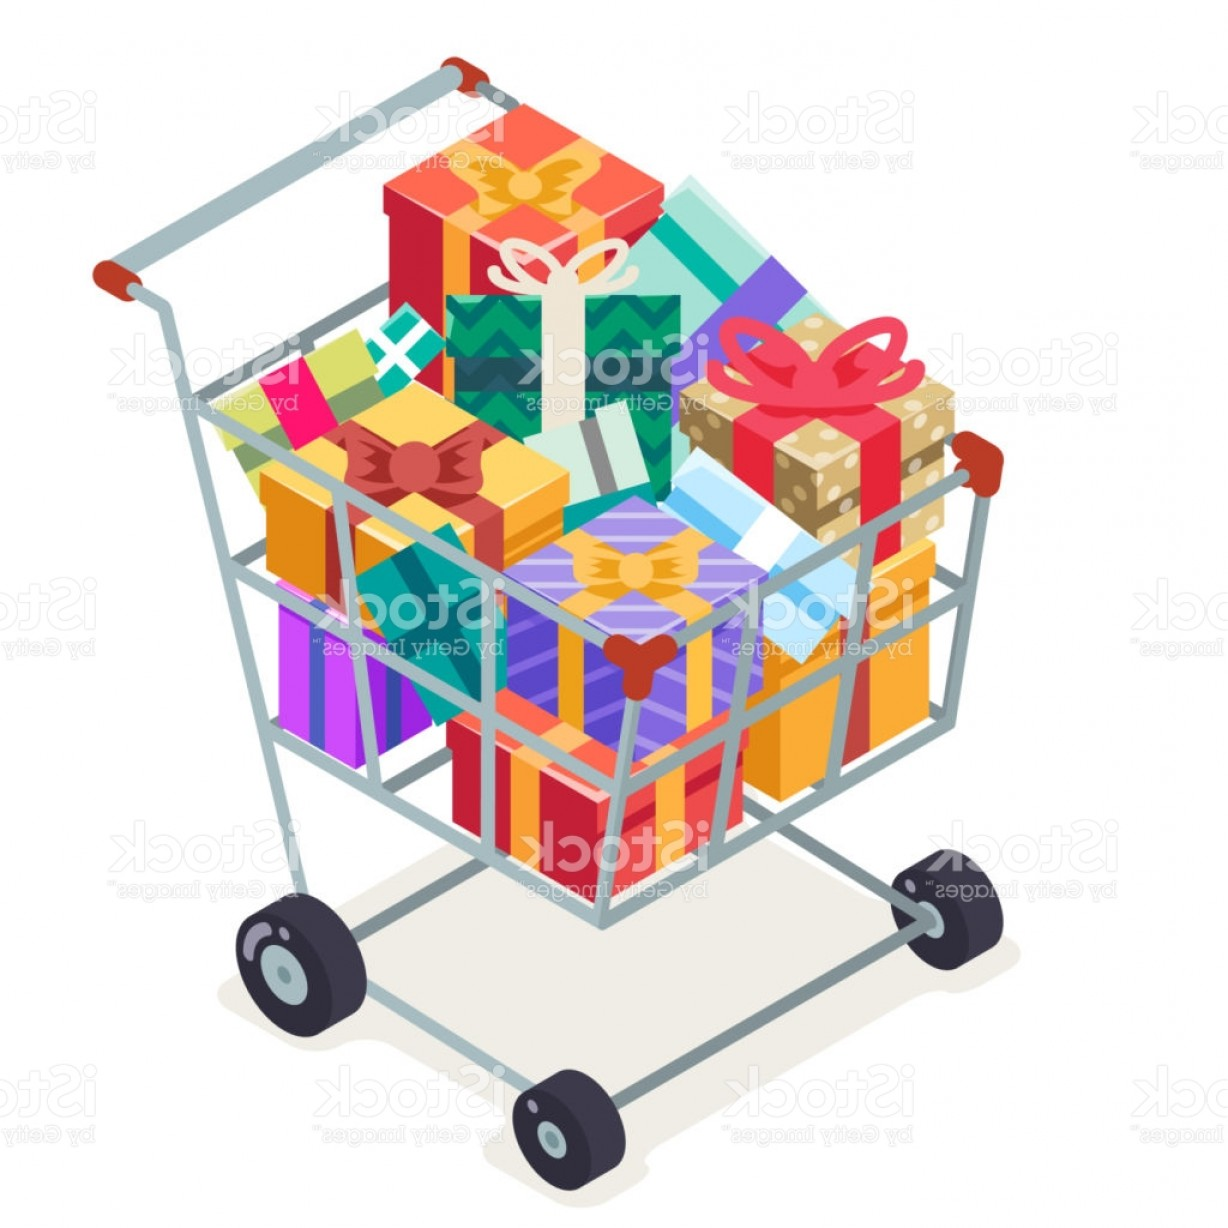 Purchase Vector Art: Isometric D Shopping Cart Purchase Goods Gift Isolated Object Icon Flat Design Gm